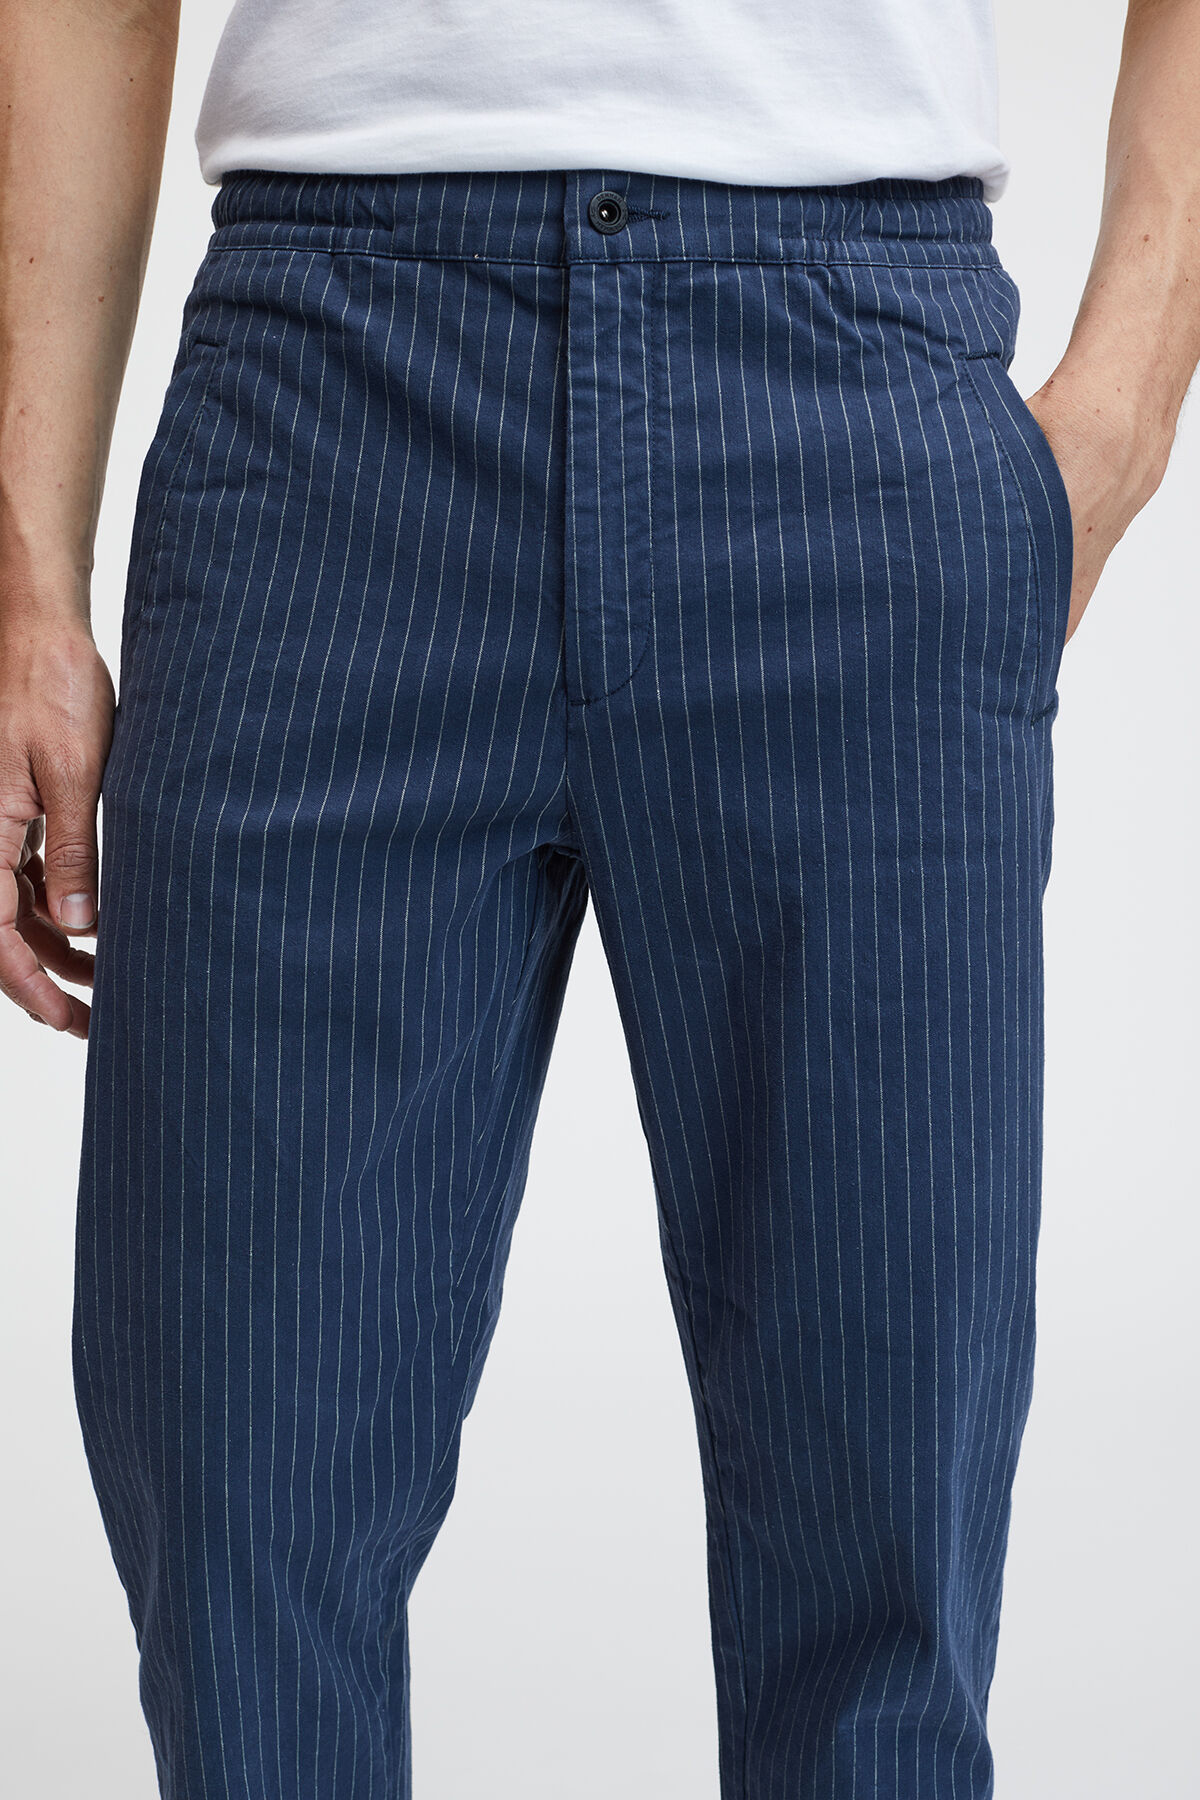 CARLTON TAILOR PANT COTTON STRETCH, NAVY PINSTRIPE FABRIC - Carrot Fit